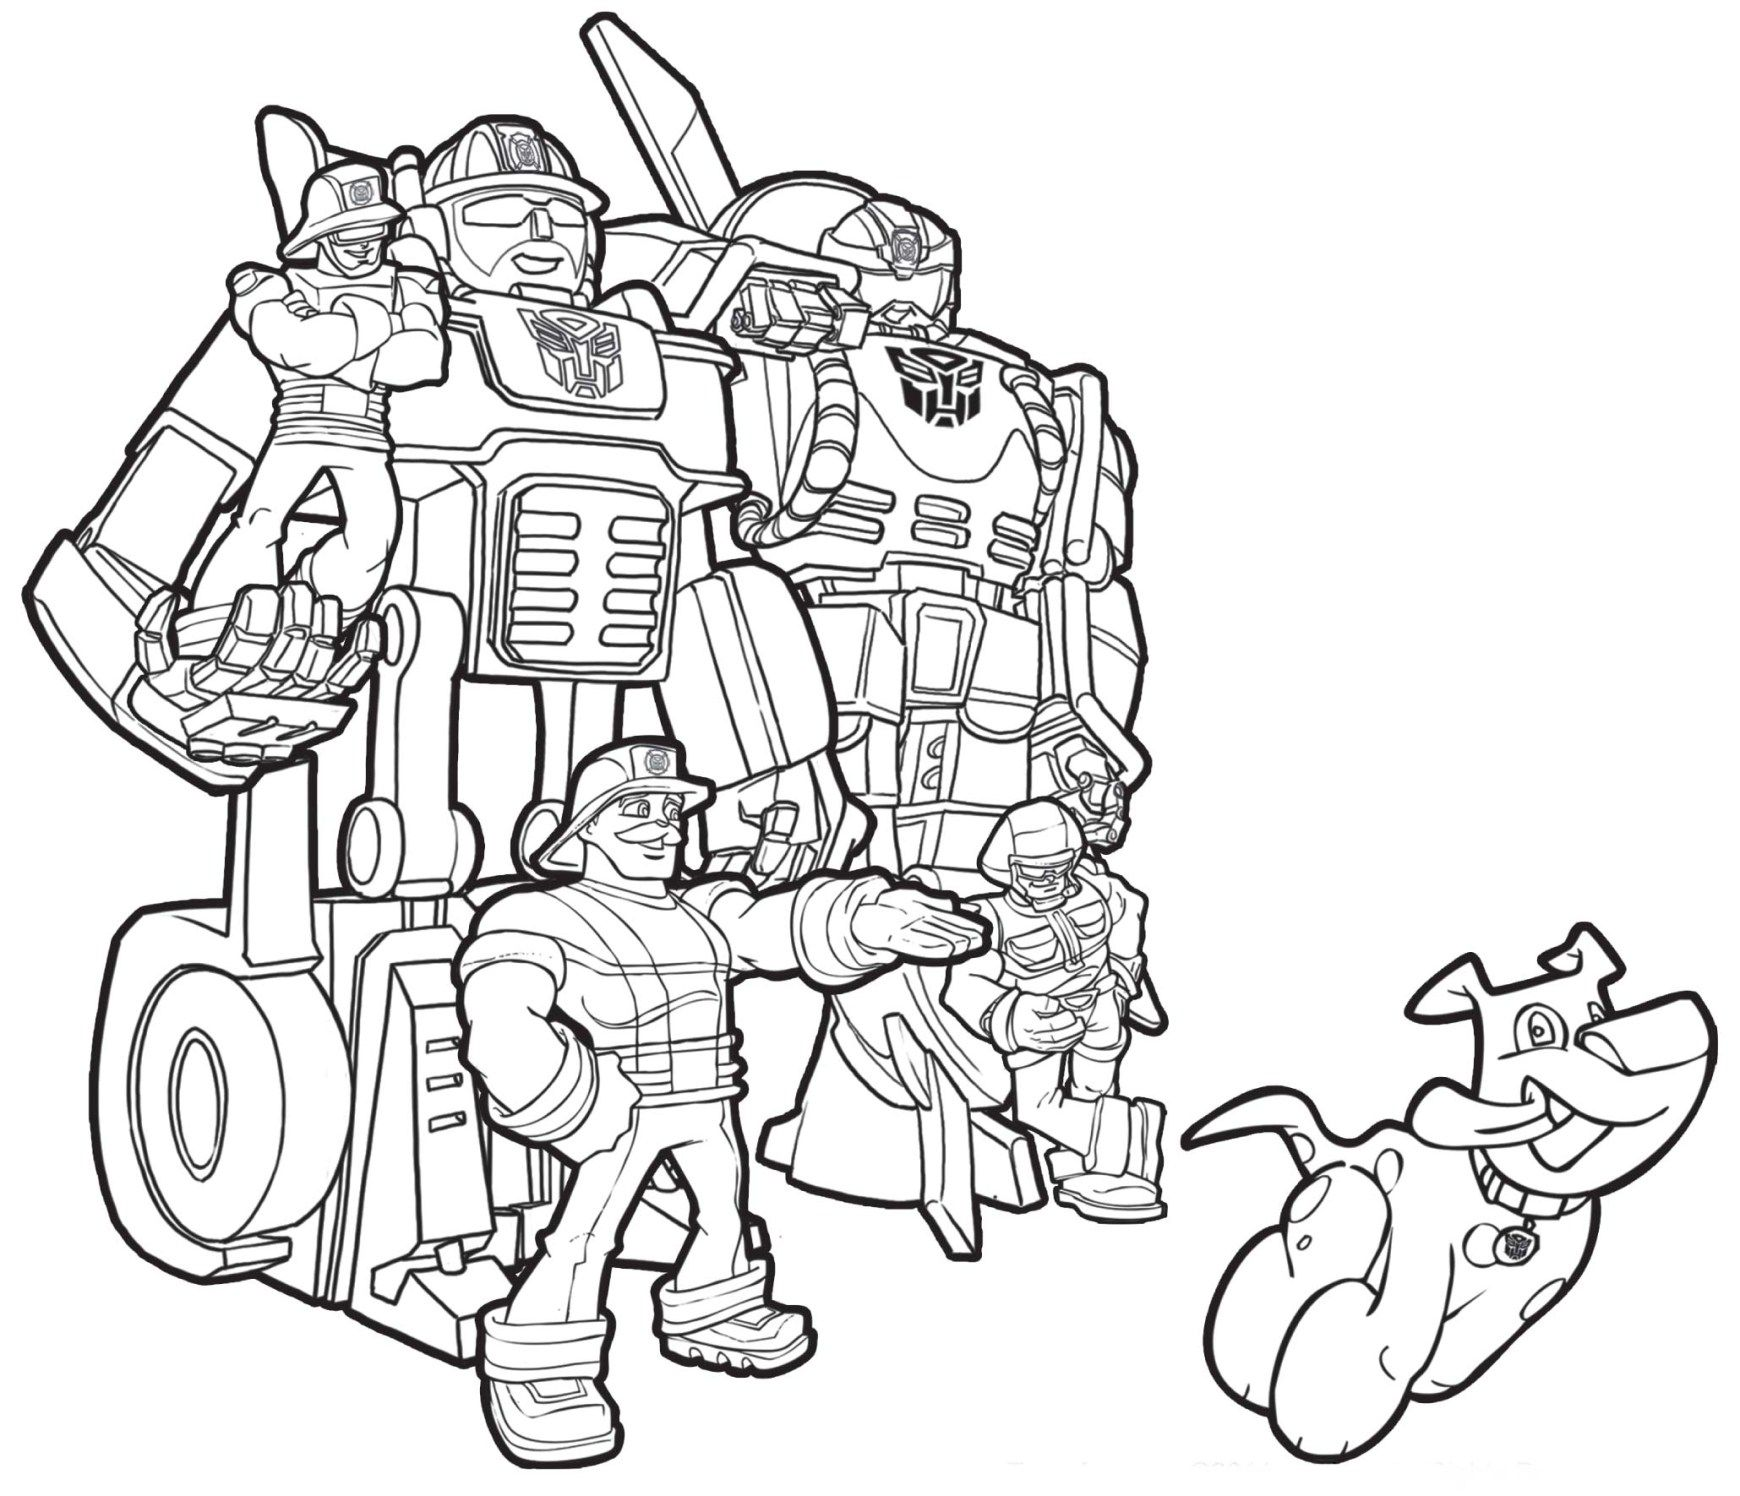 22 Brilliant Image Of Rescue Bots Coloring Pages Rescue Bots